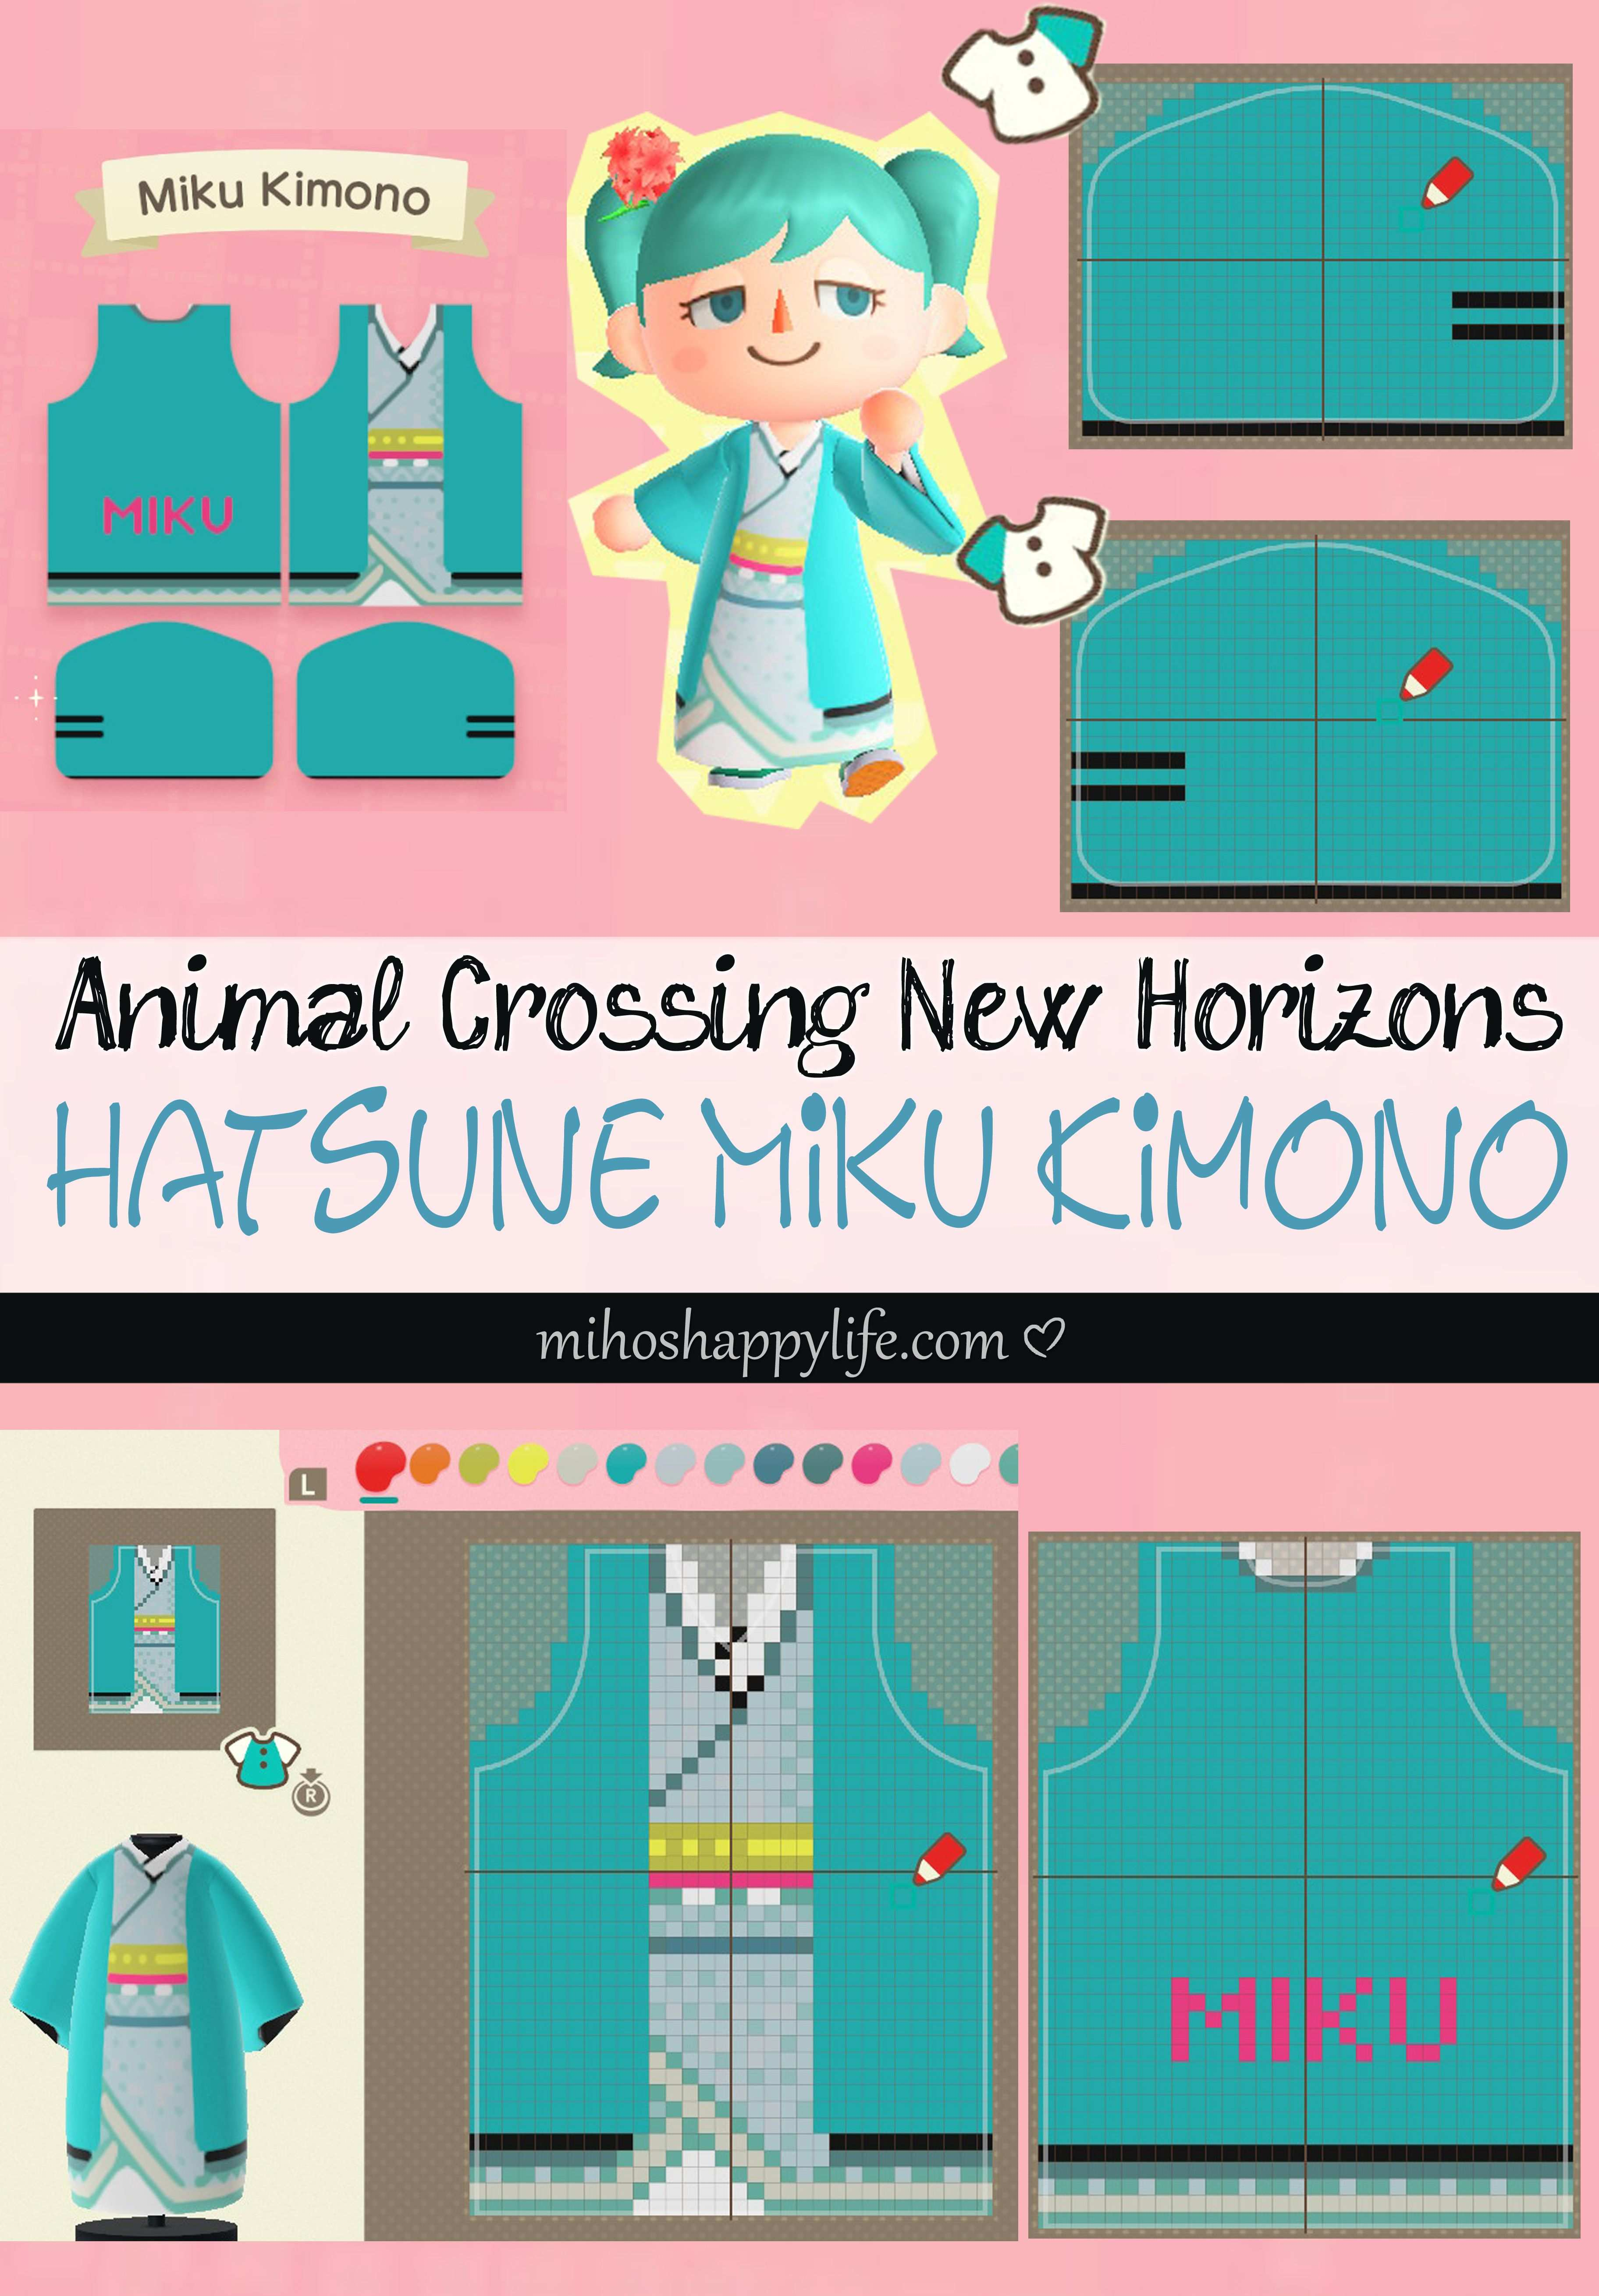 Animal Crossing New Horizons Template Design Sailor Moon Animal Crossing Animal Crossing Game New Animal Crossing